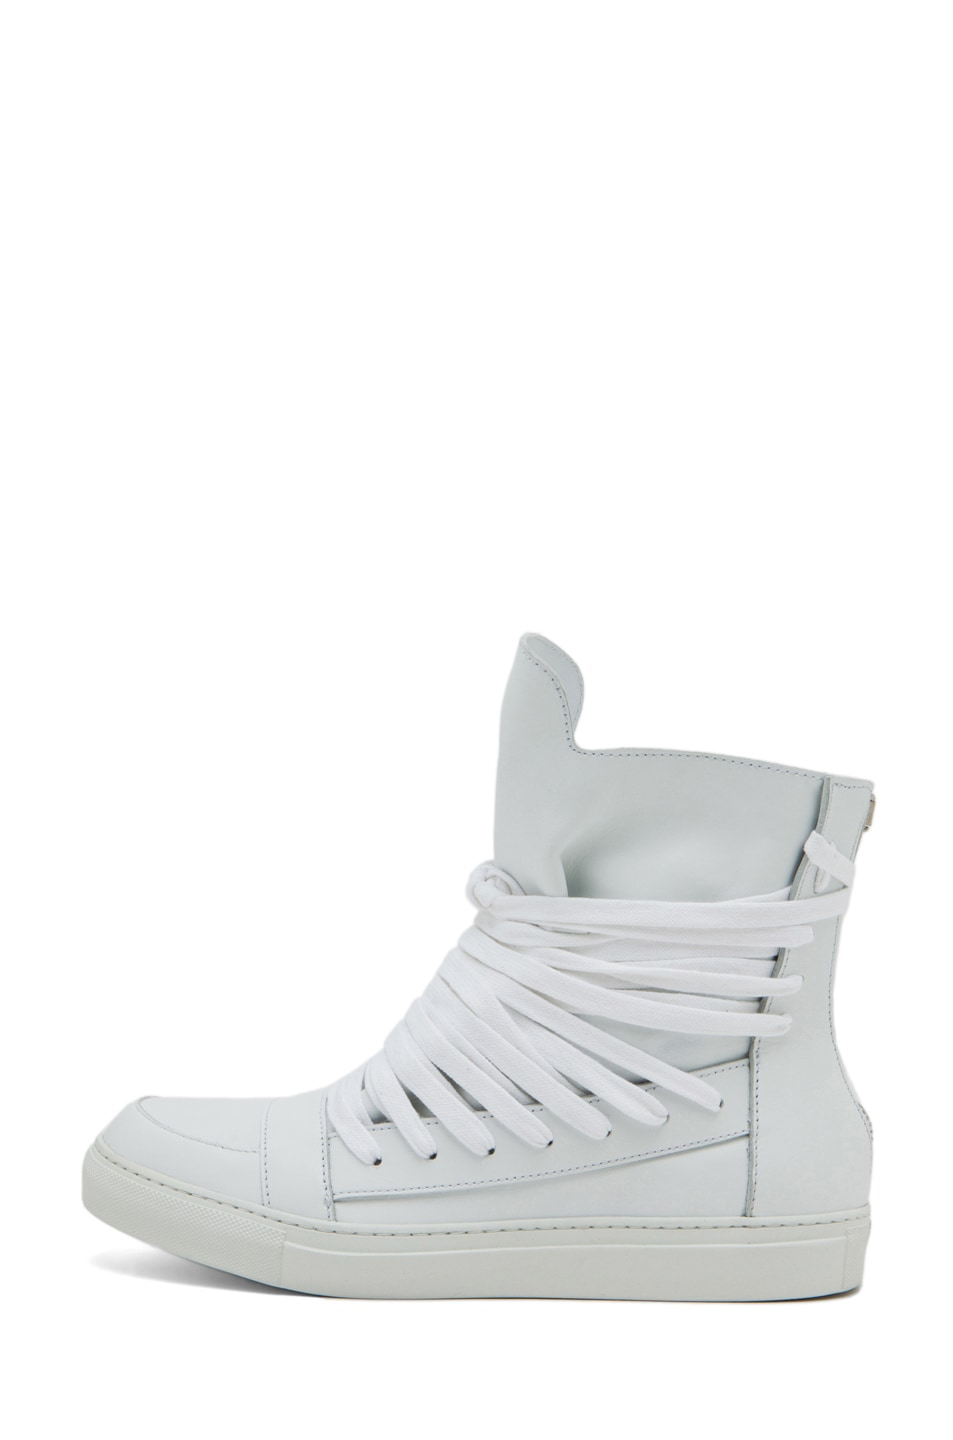 Image 1 of Kris Van Assche Laces Sneaker in White